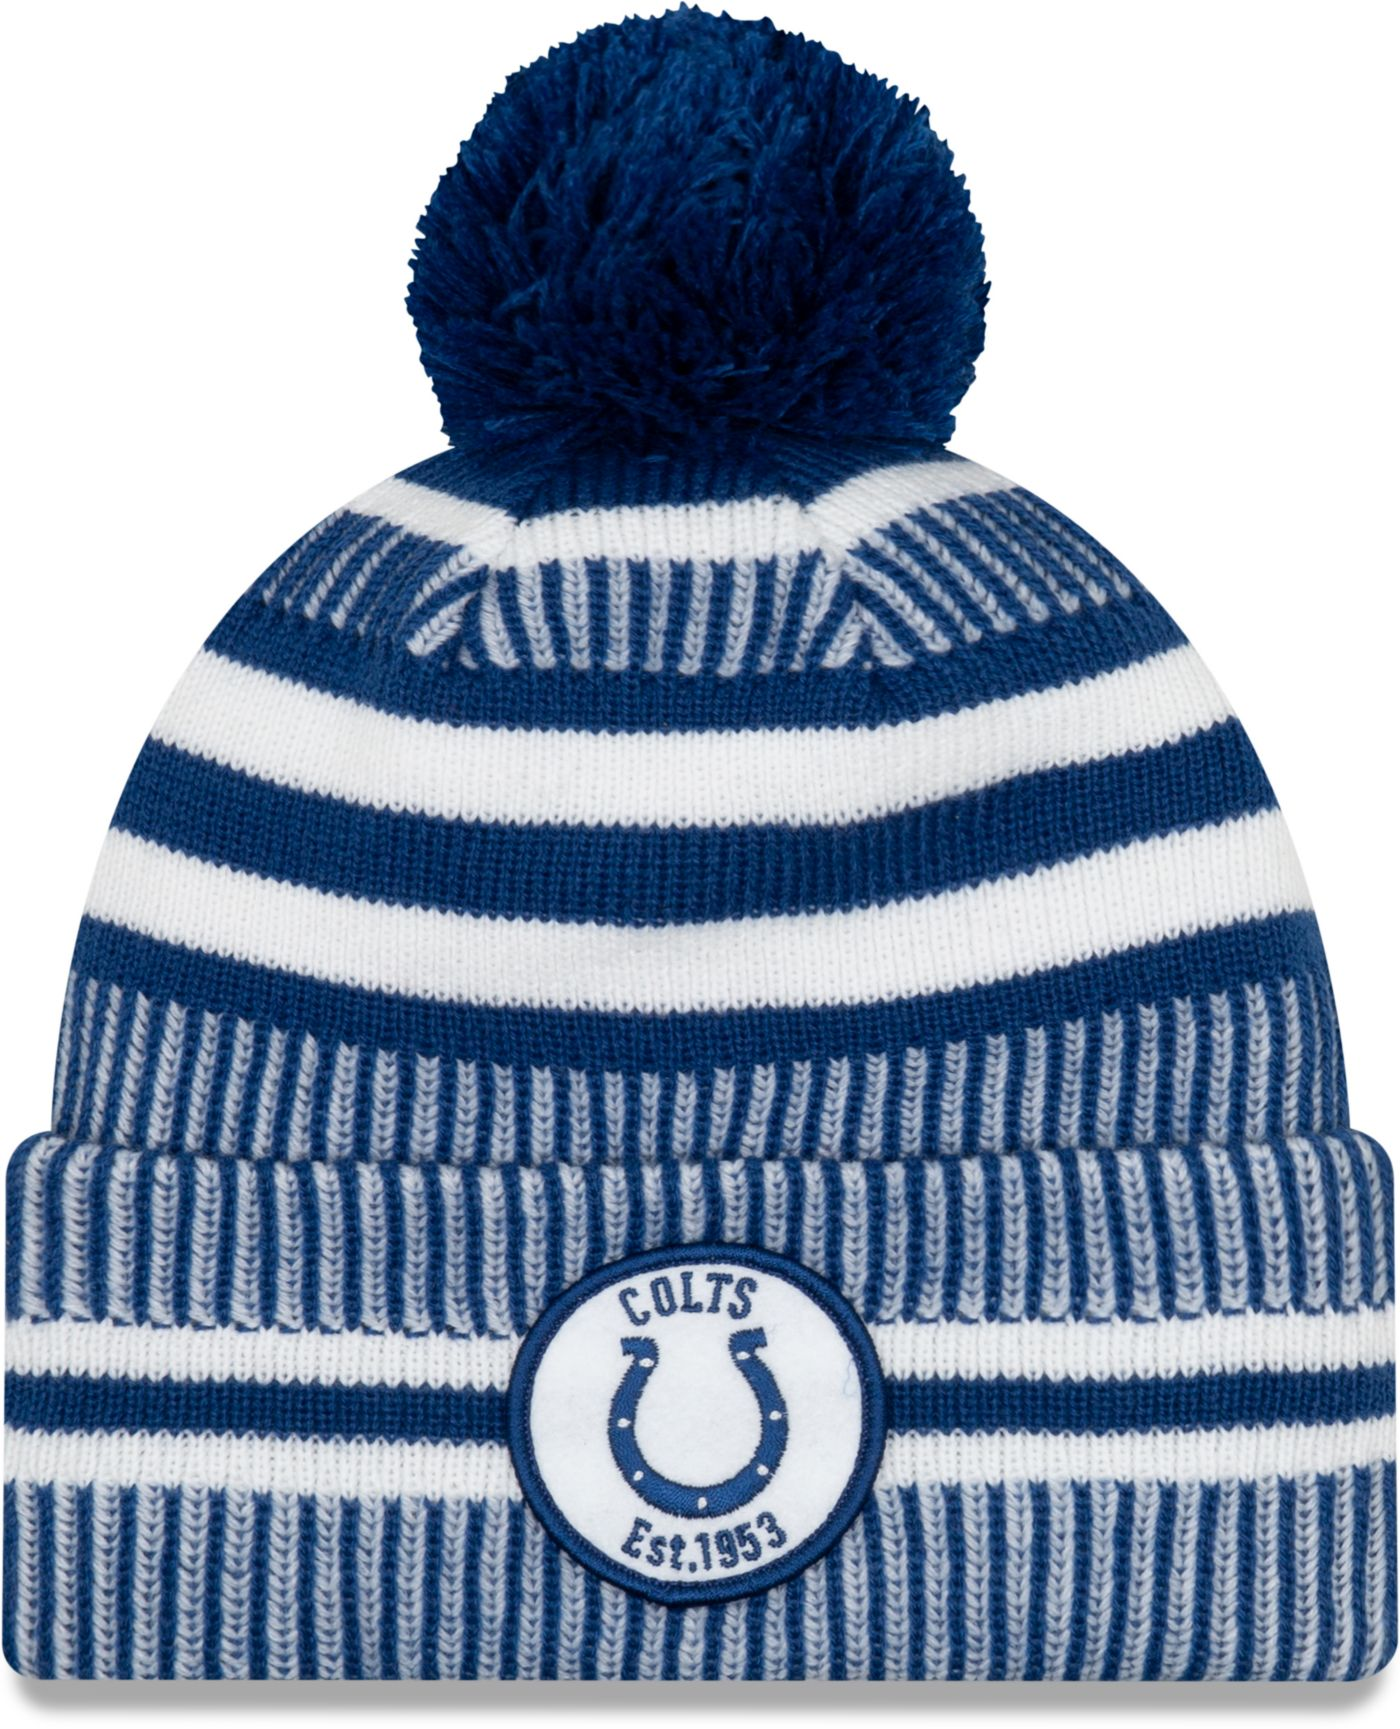 New Era Men's Indianapolis Colts Sideline Home Sport Pom Knit